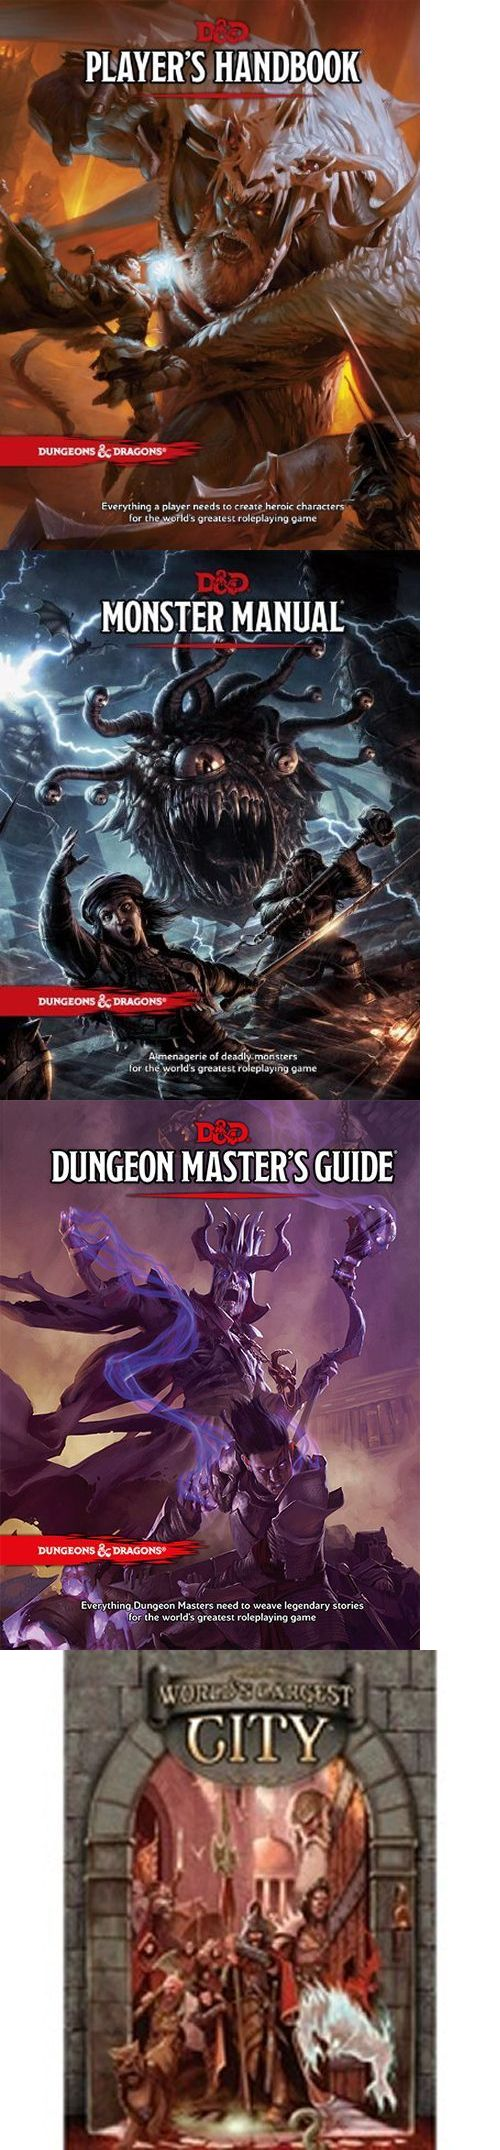 Players Handbooks 158712: Dungeons And Dragons Bundle $249.85 Value 4 Titles (Wizards Of The Coast Alderac) -> BUY IT NOW ONLY: $139.99 on eBay!